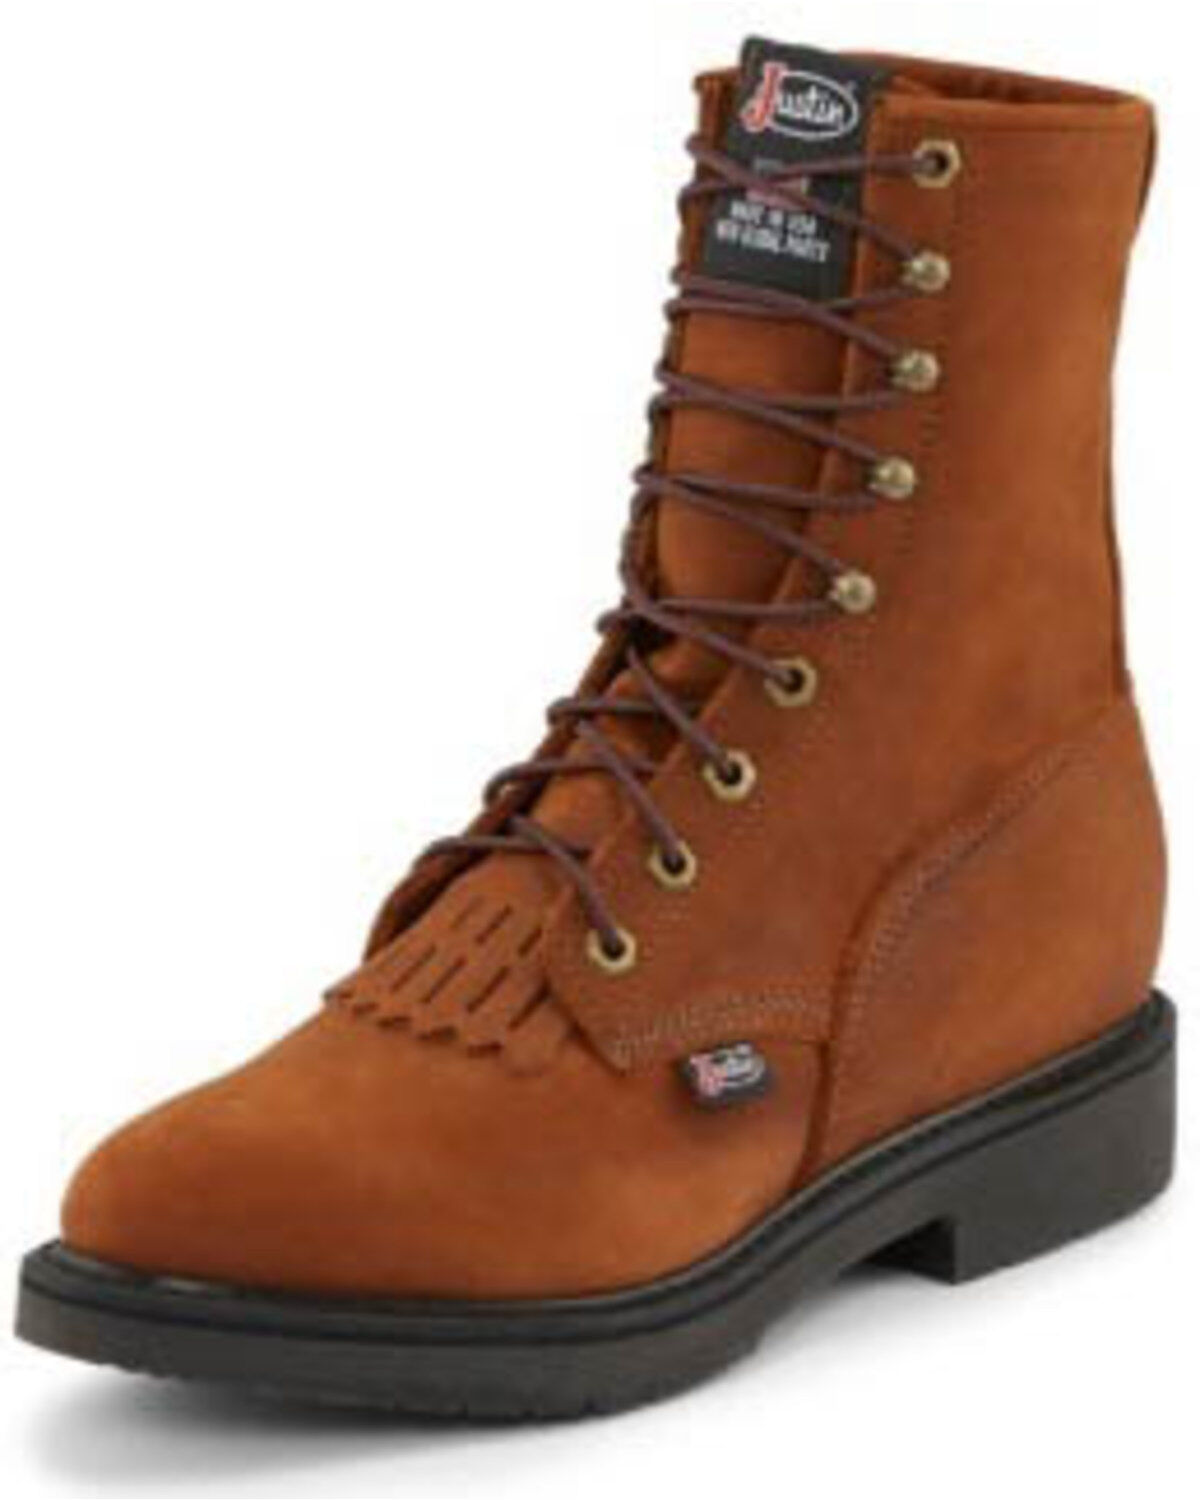 Justin Men's Lace Up Work Boots   Boot Barn